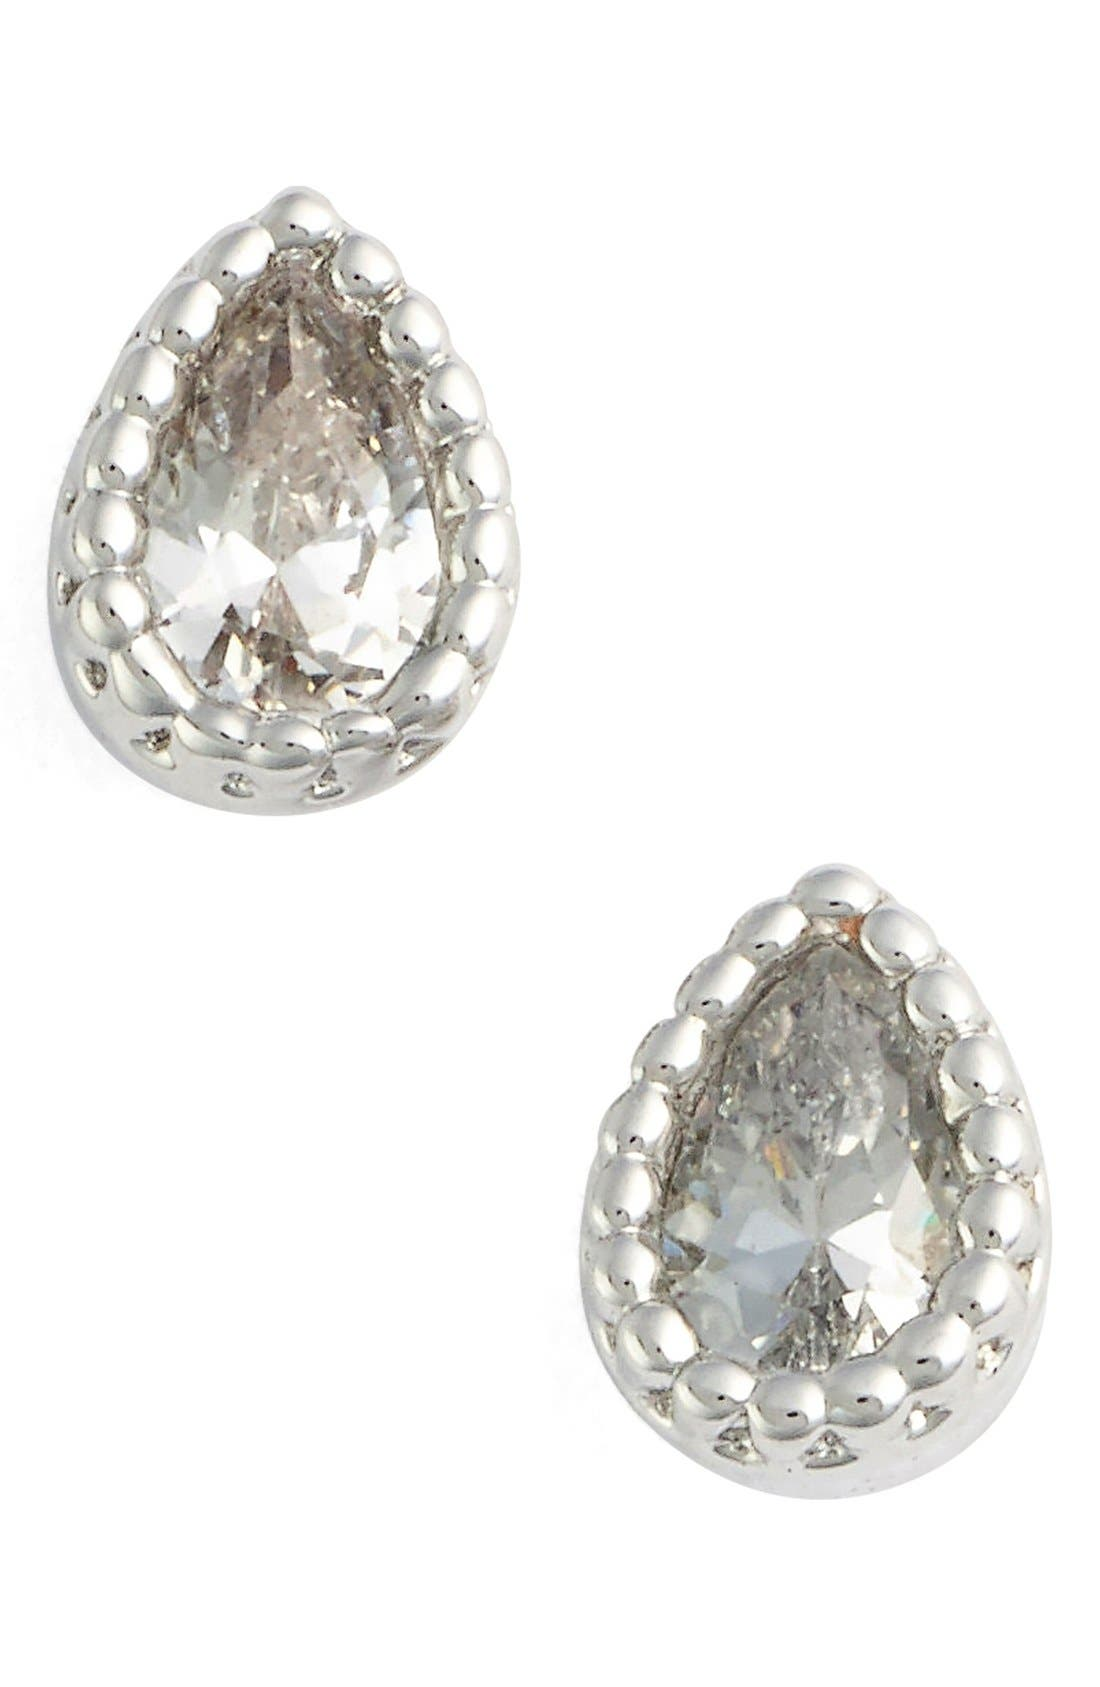 Alternate Image 1 Selected - Jules Smith Micro Teardrop Stud Earrings